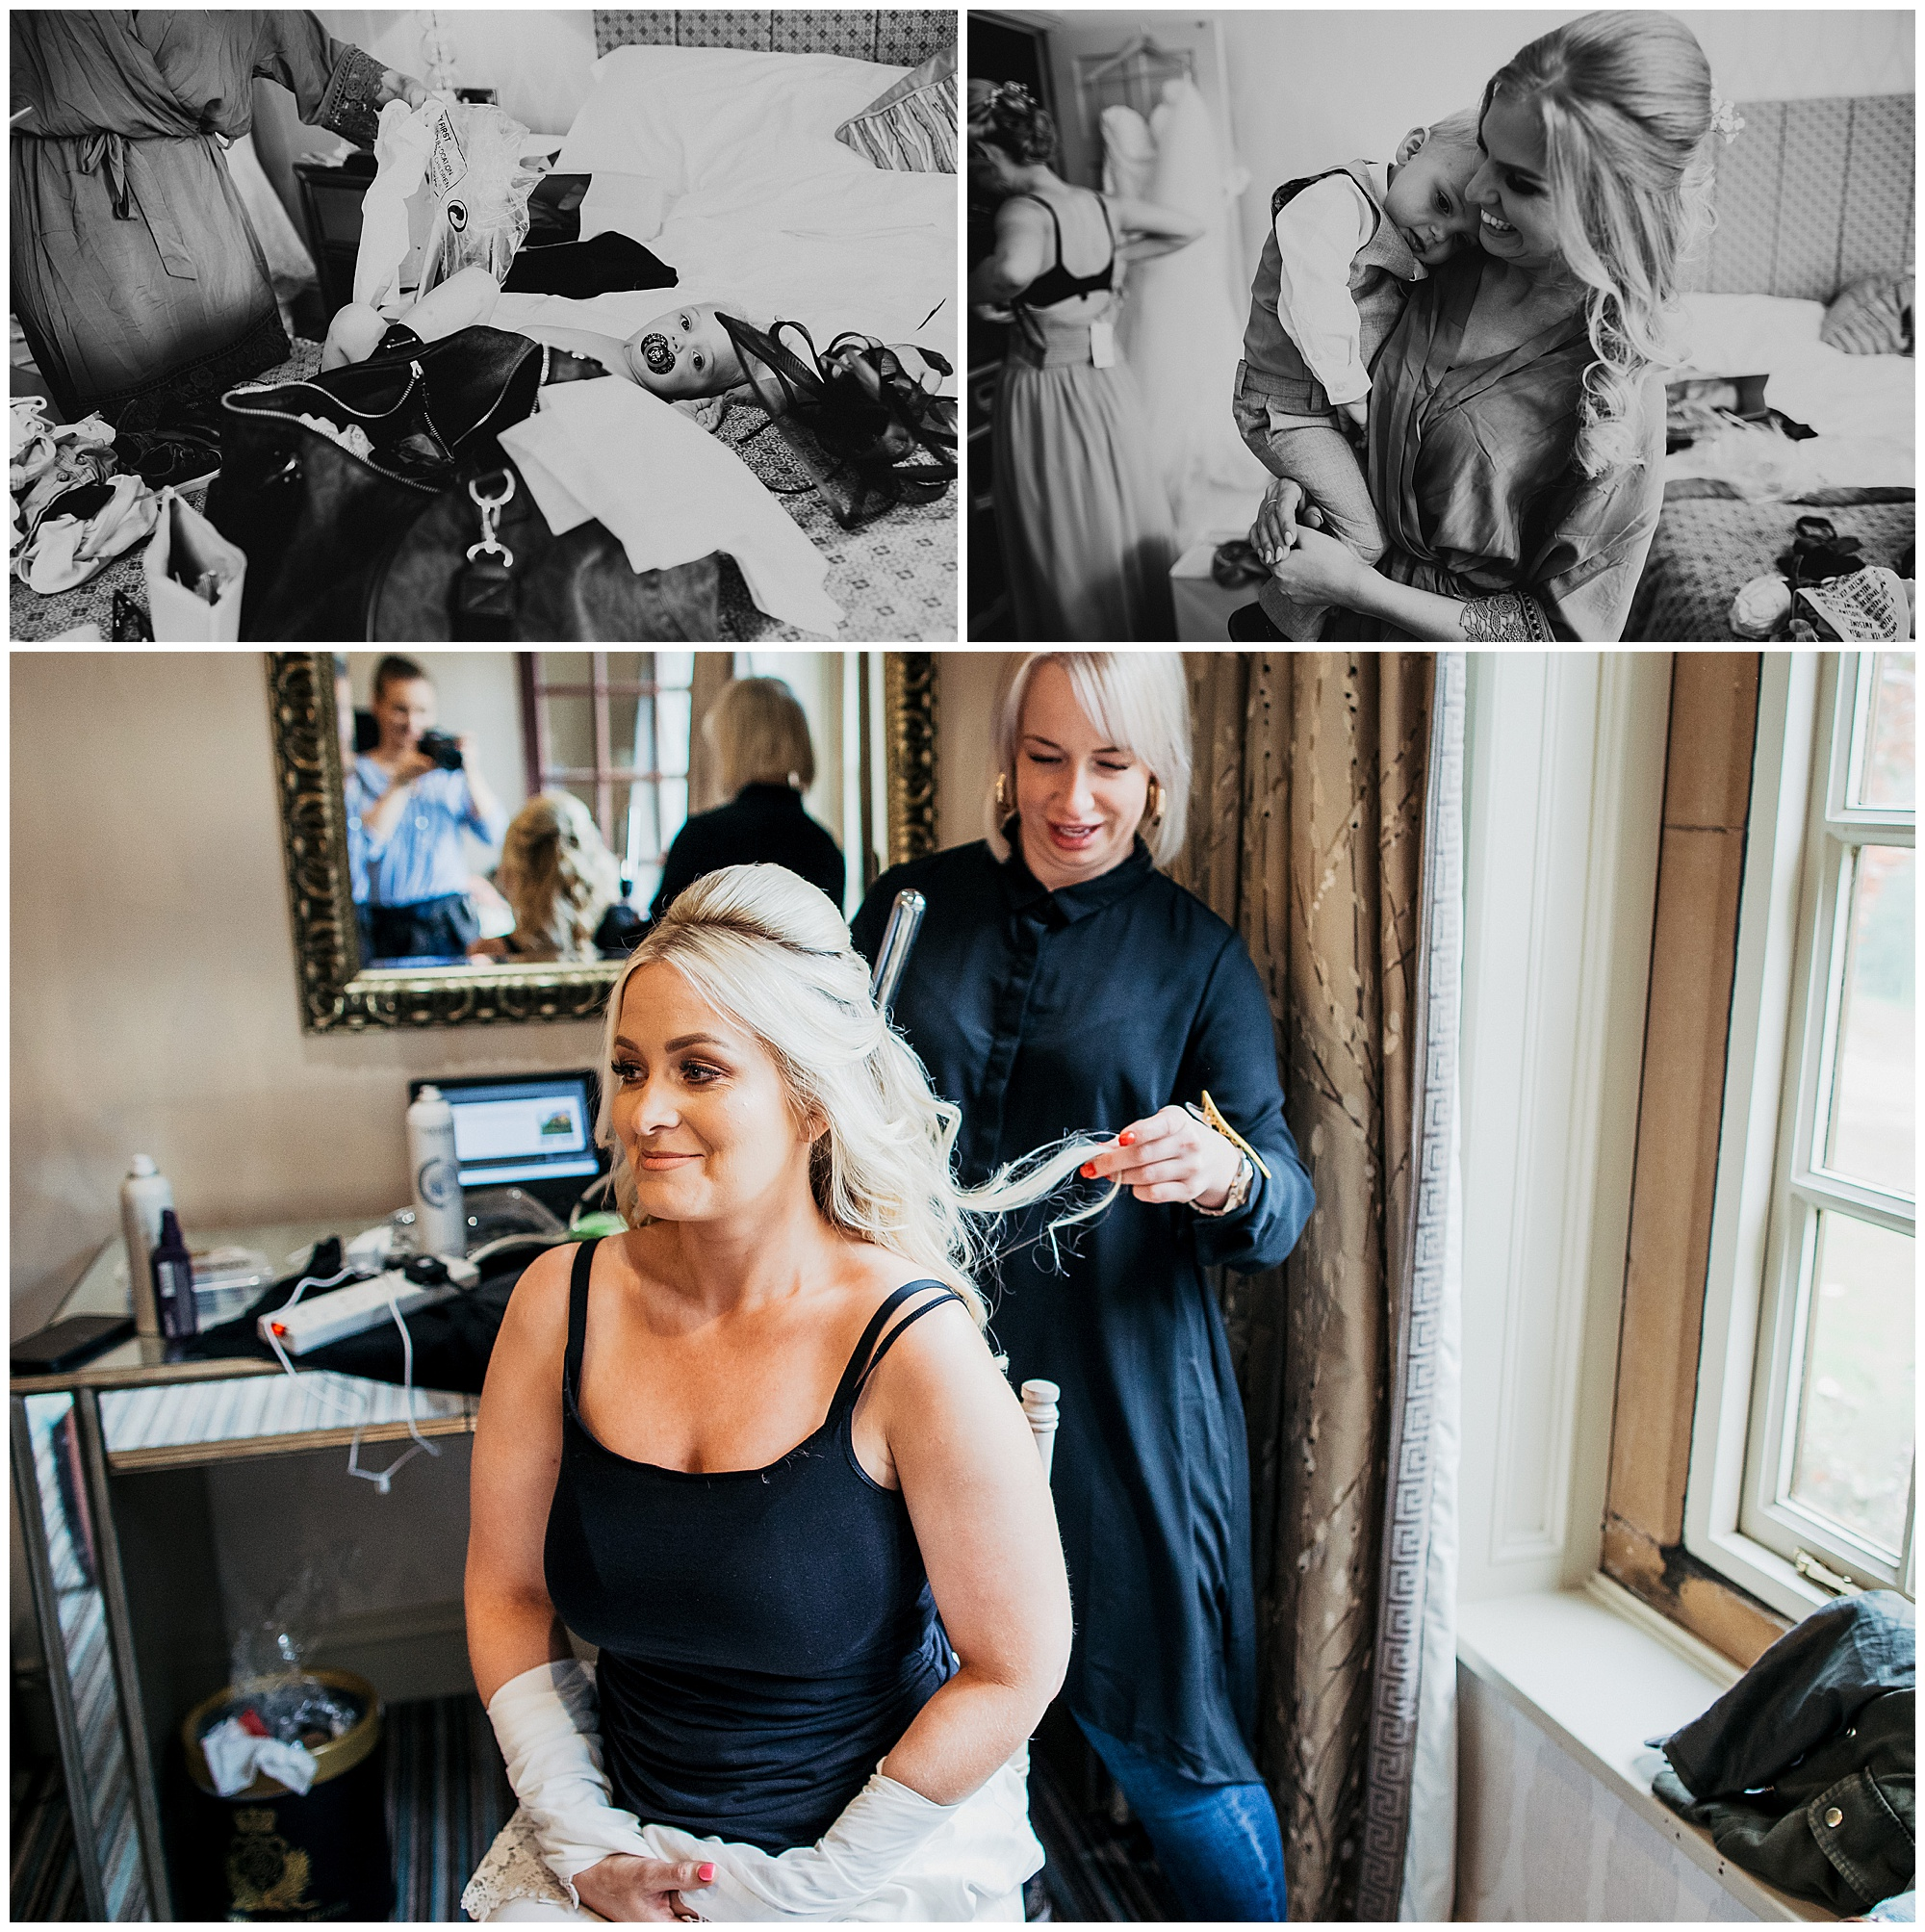 Bridal prep pennyhill park hotel and spa